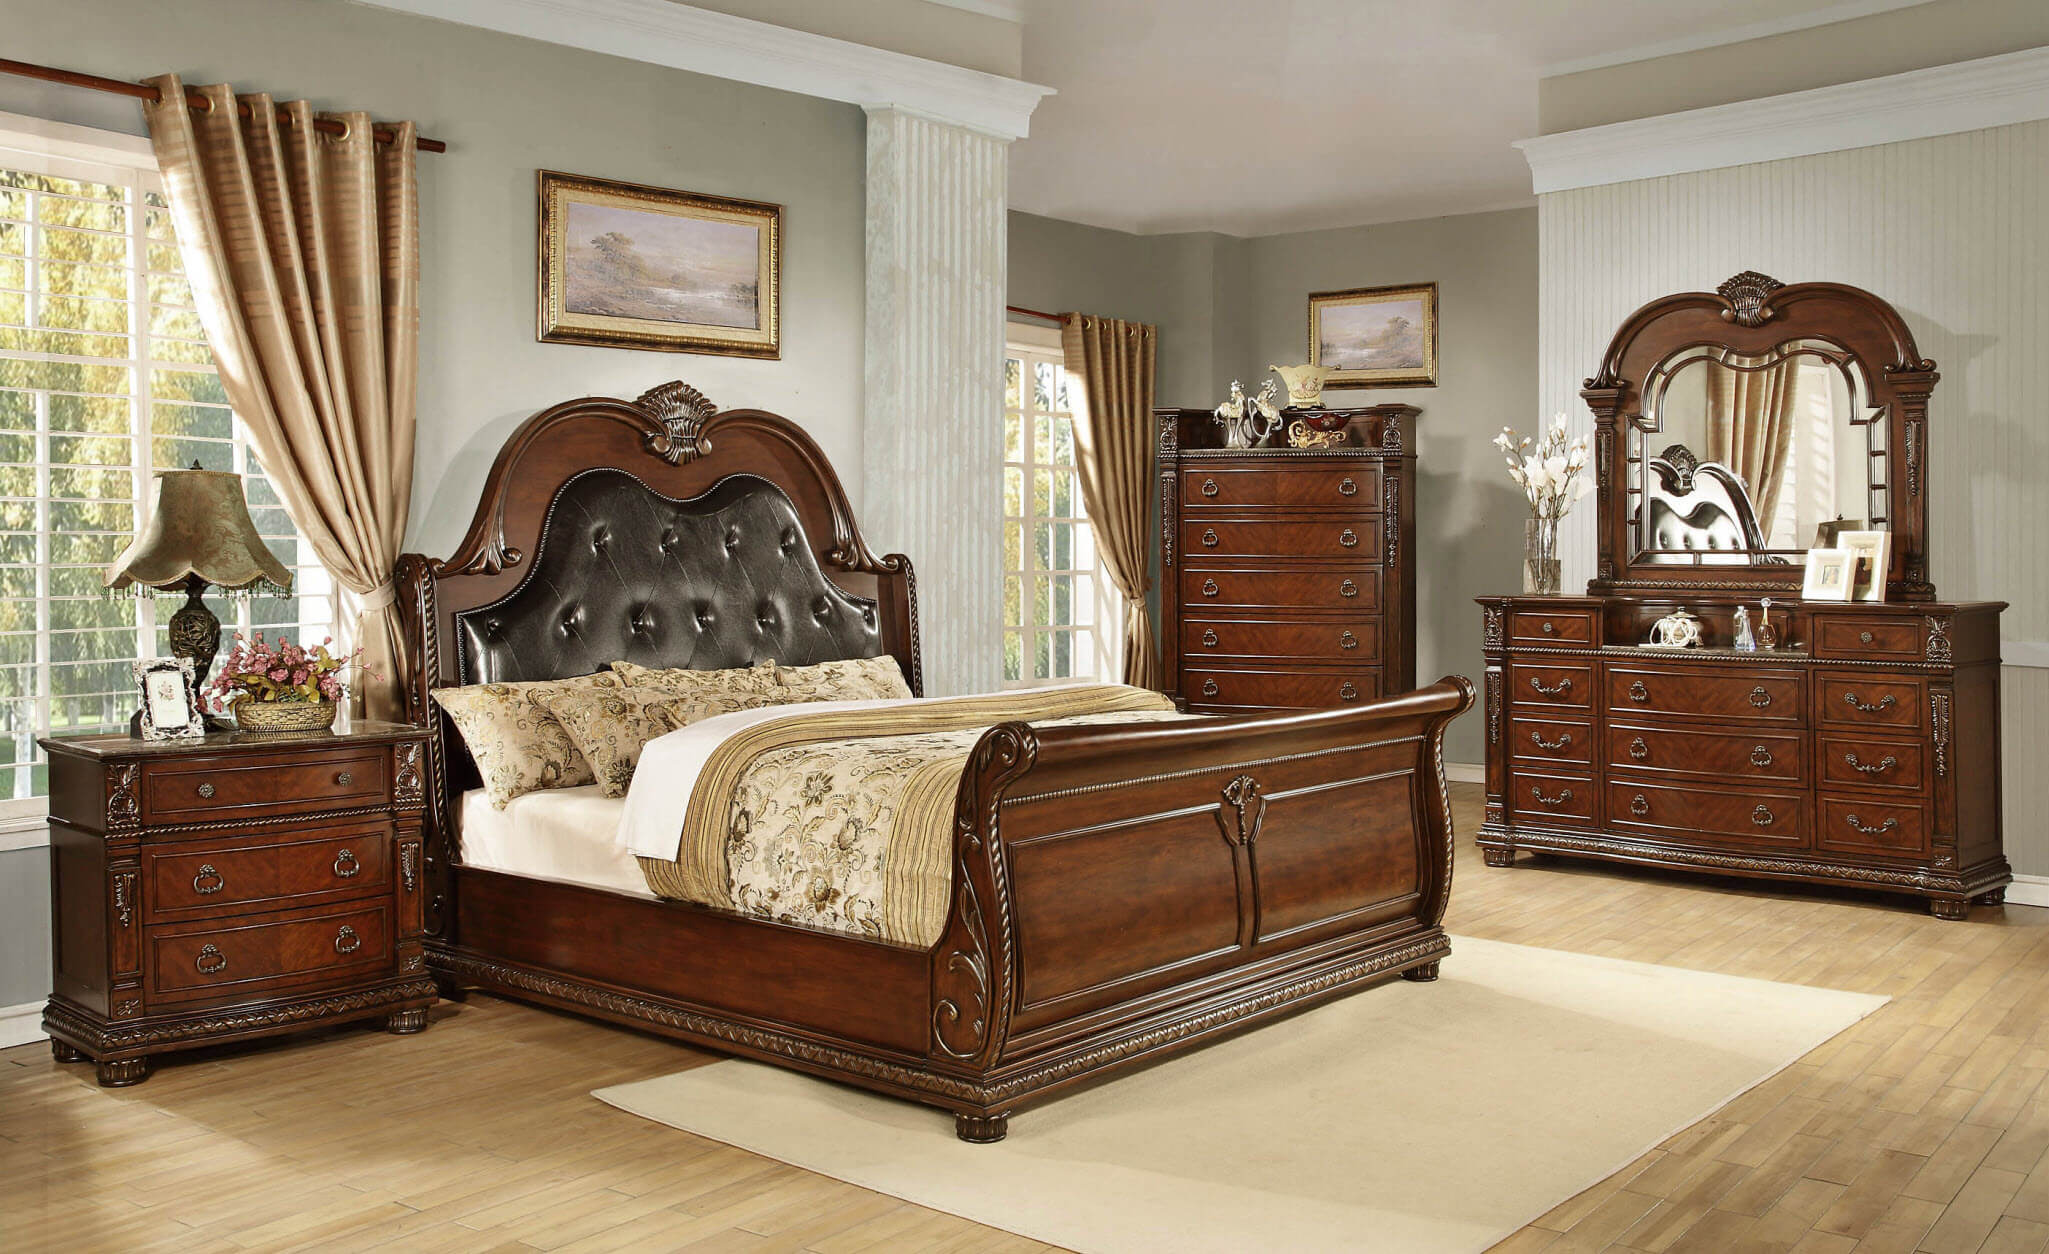 stanley bedroom furniture stanley marble top bedroom set bedroom furniture sets 13388